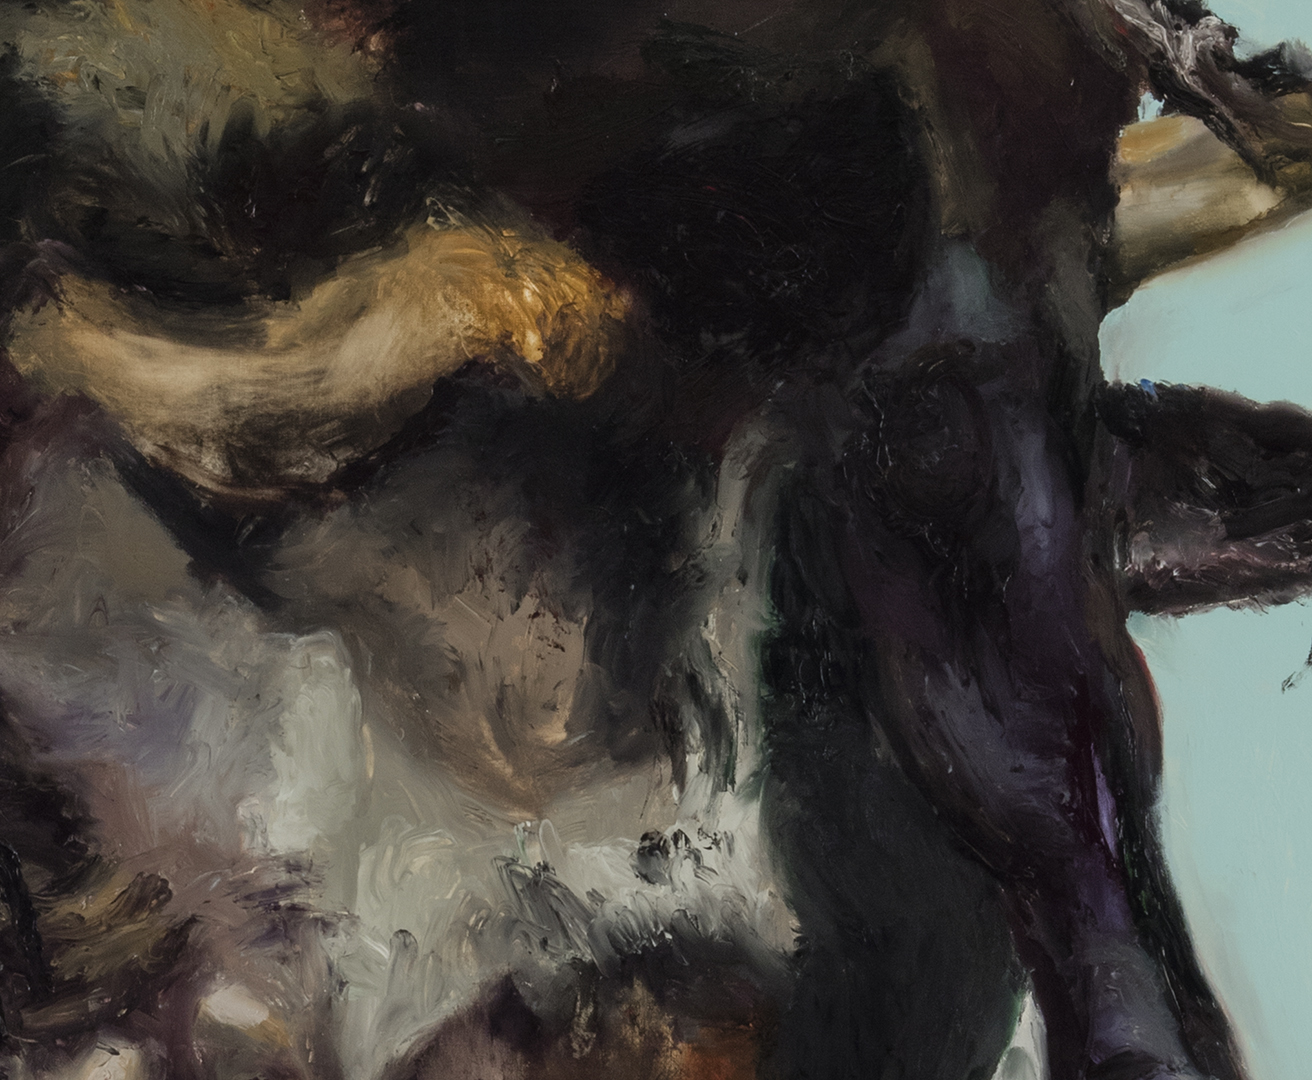 Bull with Seafoam (detail)